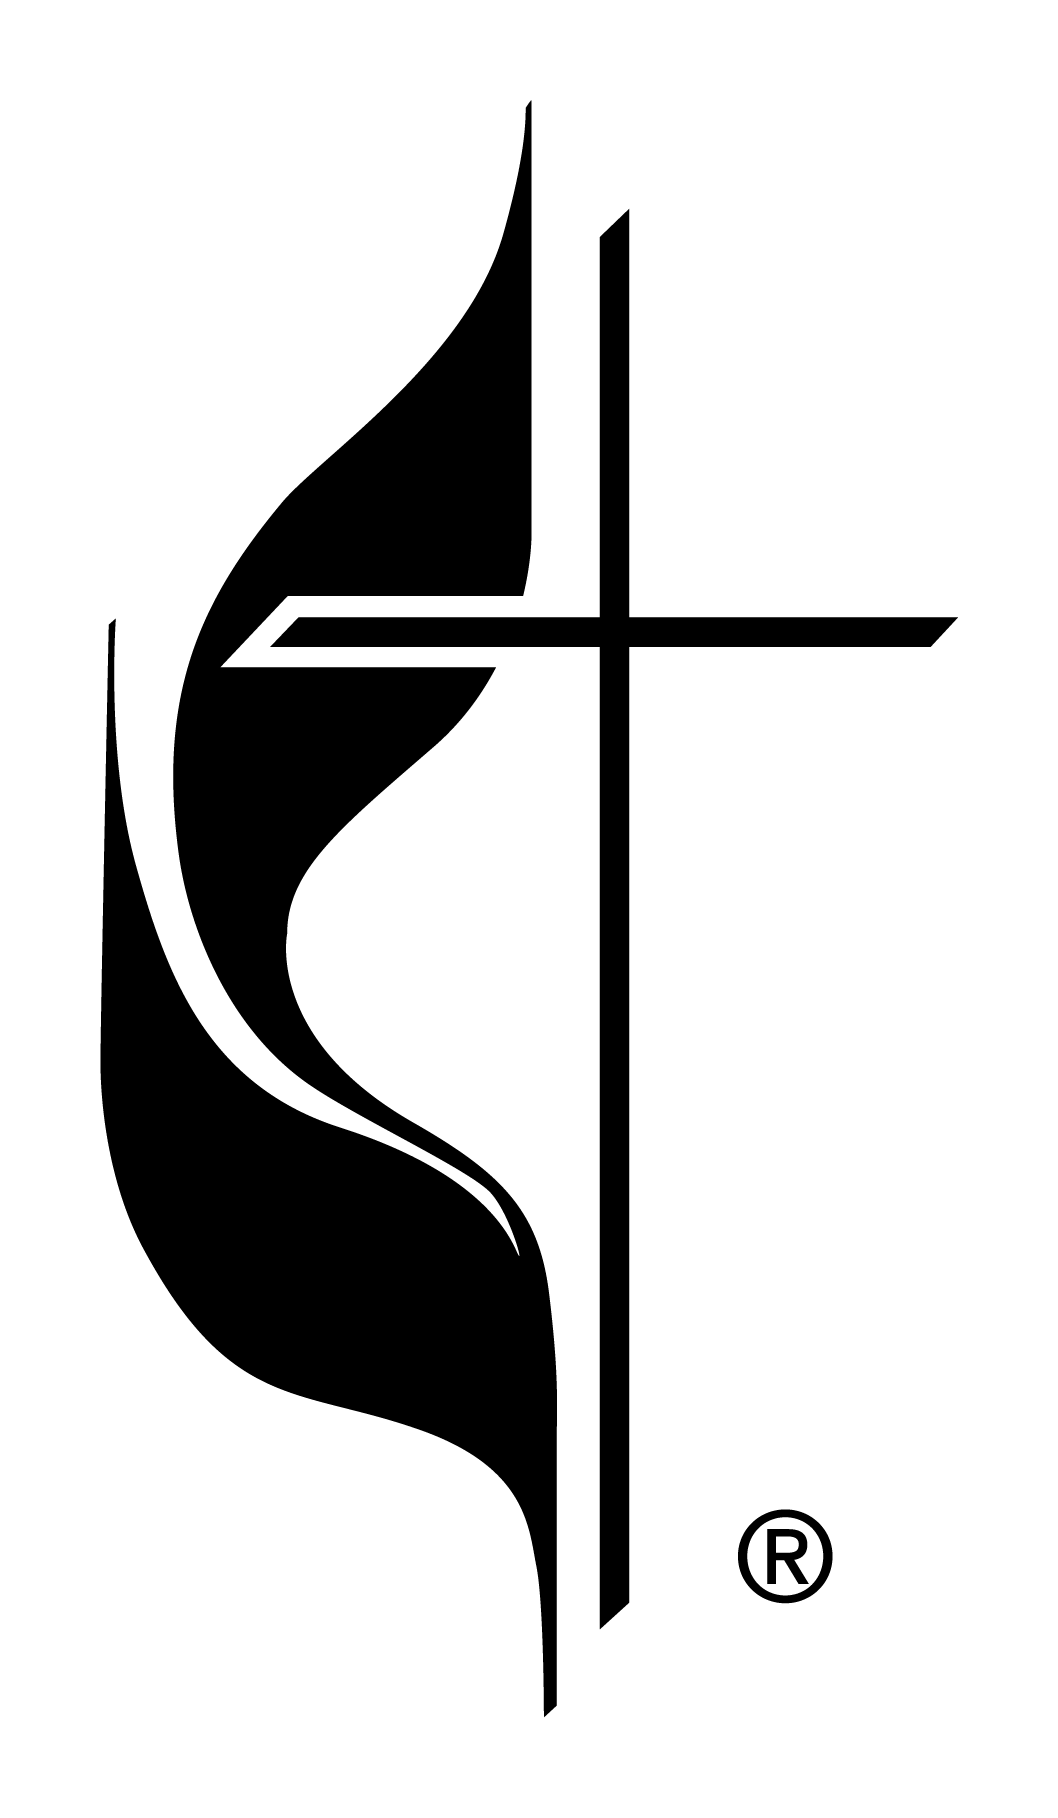 cross and flame the united methodist church rh umc org Cross and Flame Clip Art UMC Cross and Flame